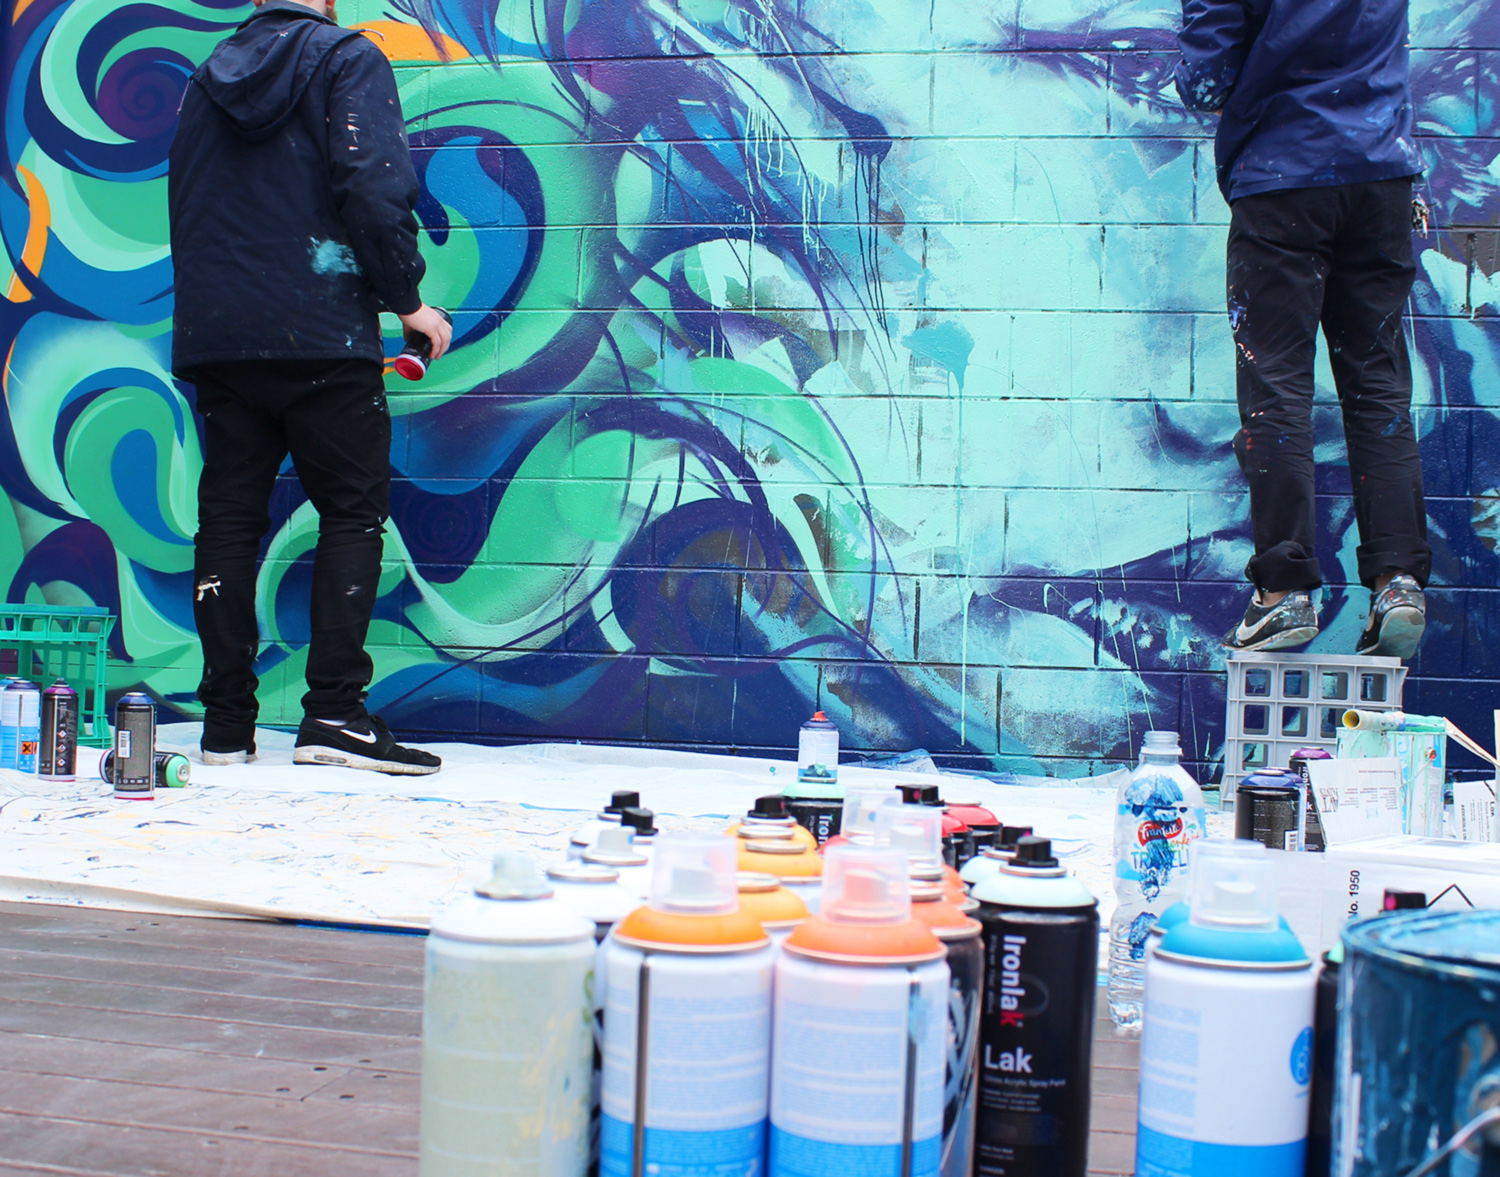 Ovolo-Laneways-featuring-Melbourne-Street-Artists-Mike-Eleven-and-Ruskidd-3.jpg